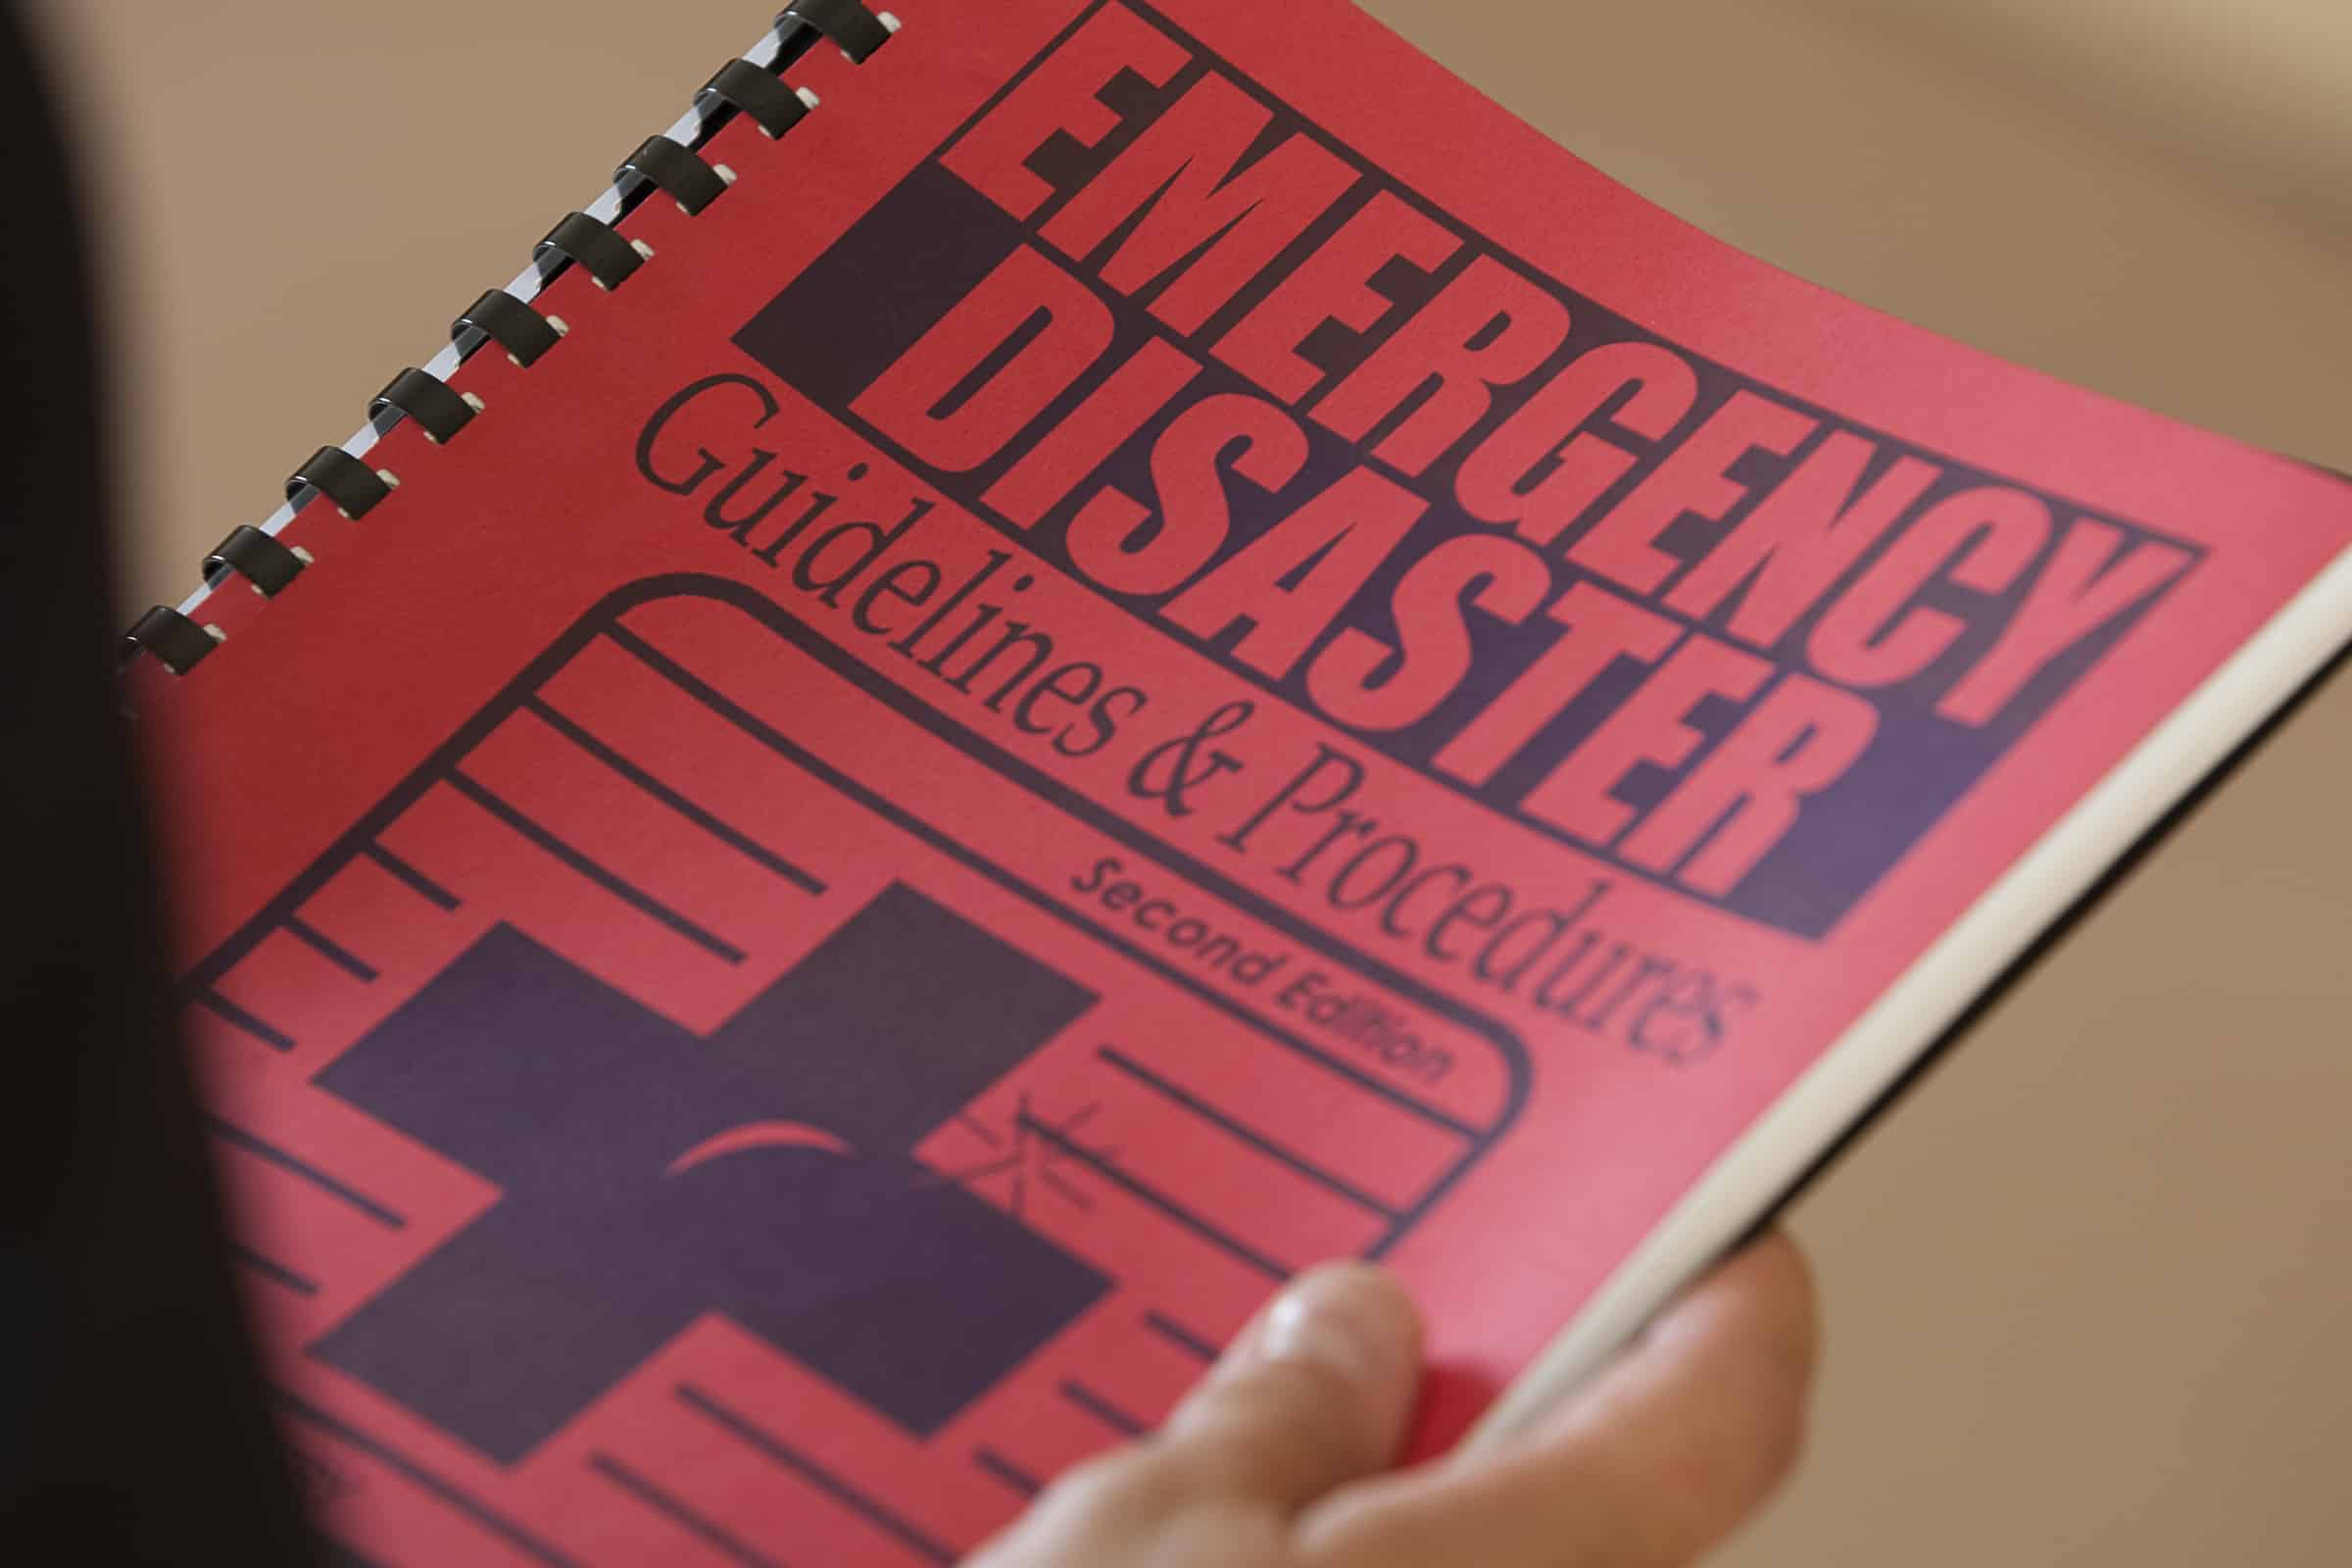 The Emergency Planning Guide